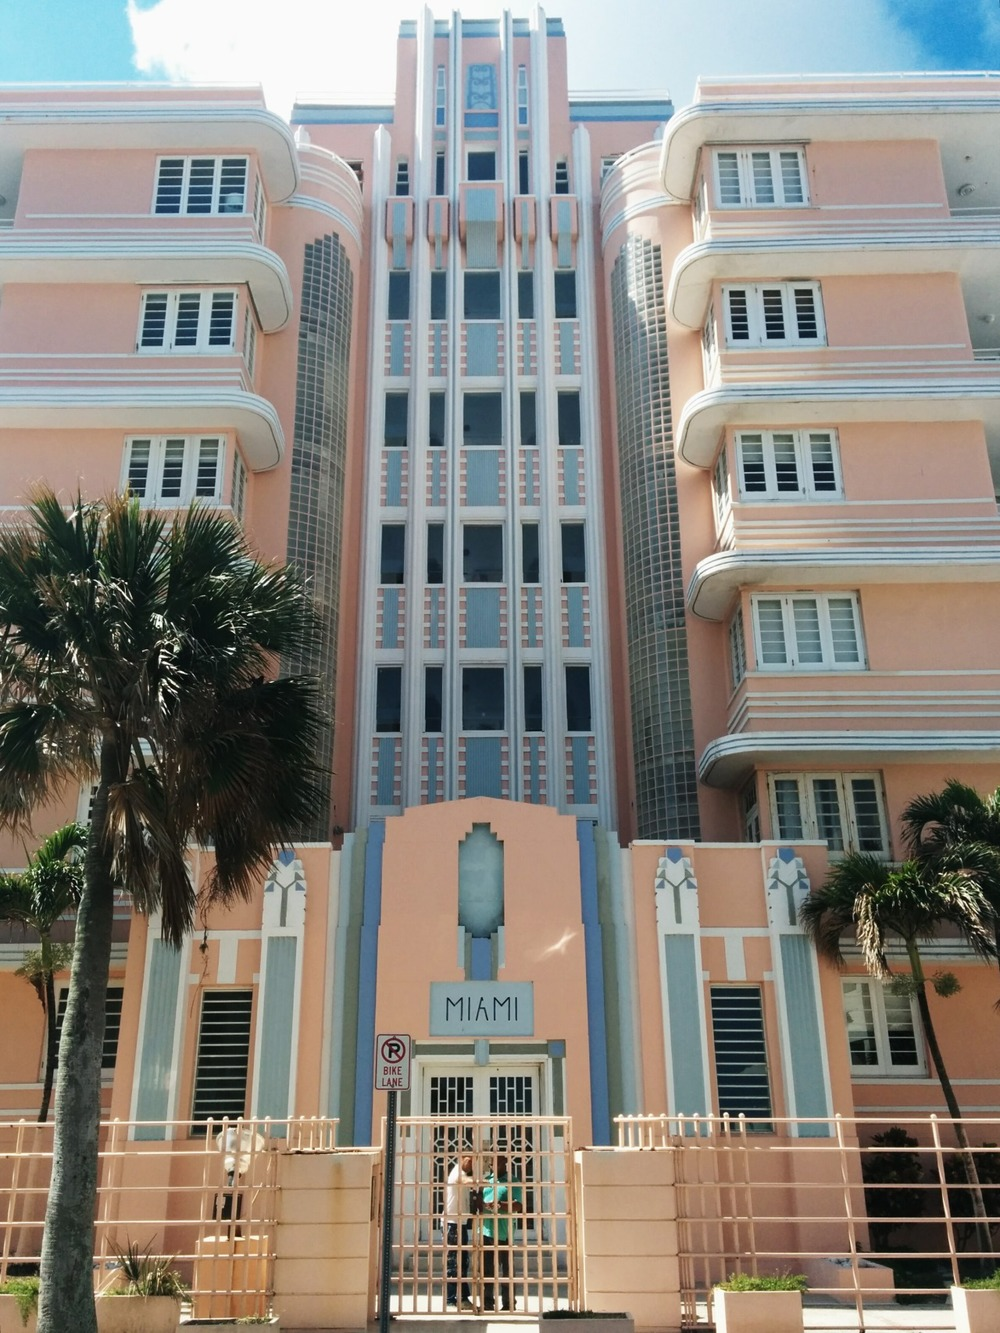 Art Deco Miami An America era lived and died here